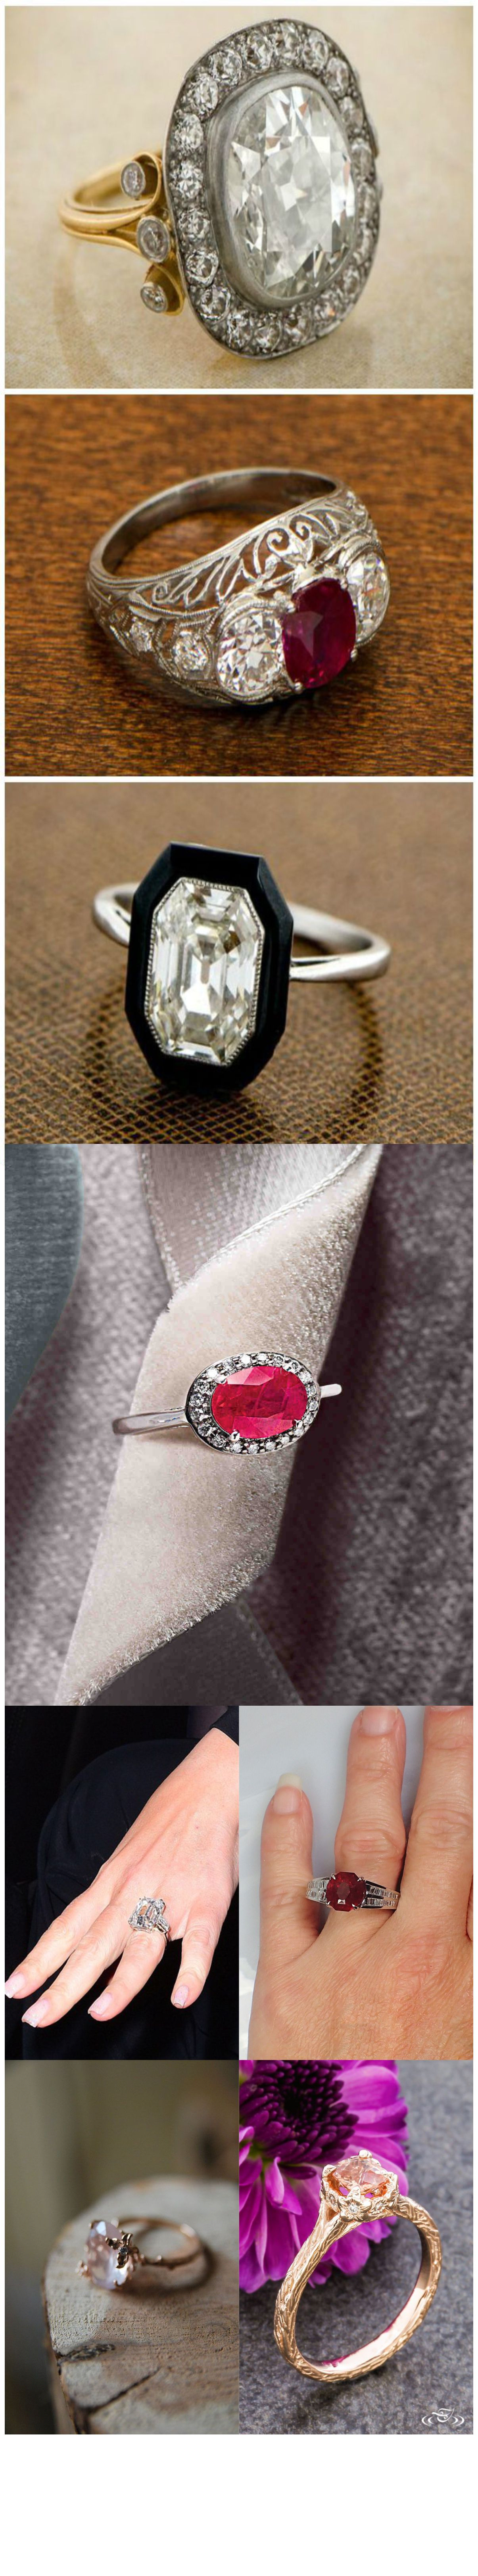 Beautiful Ruby Rings For The Ring Ceremony 2018